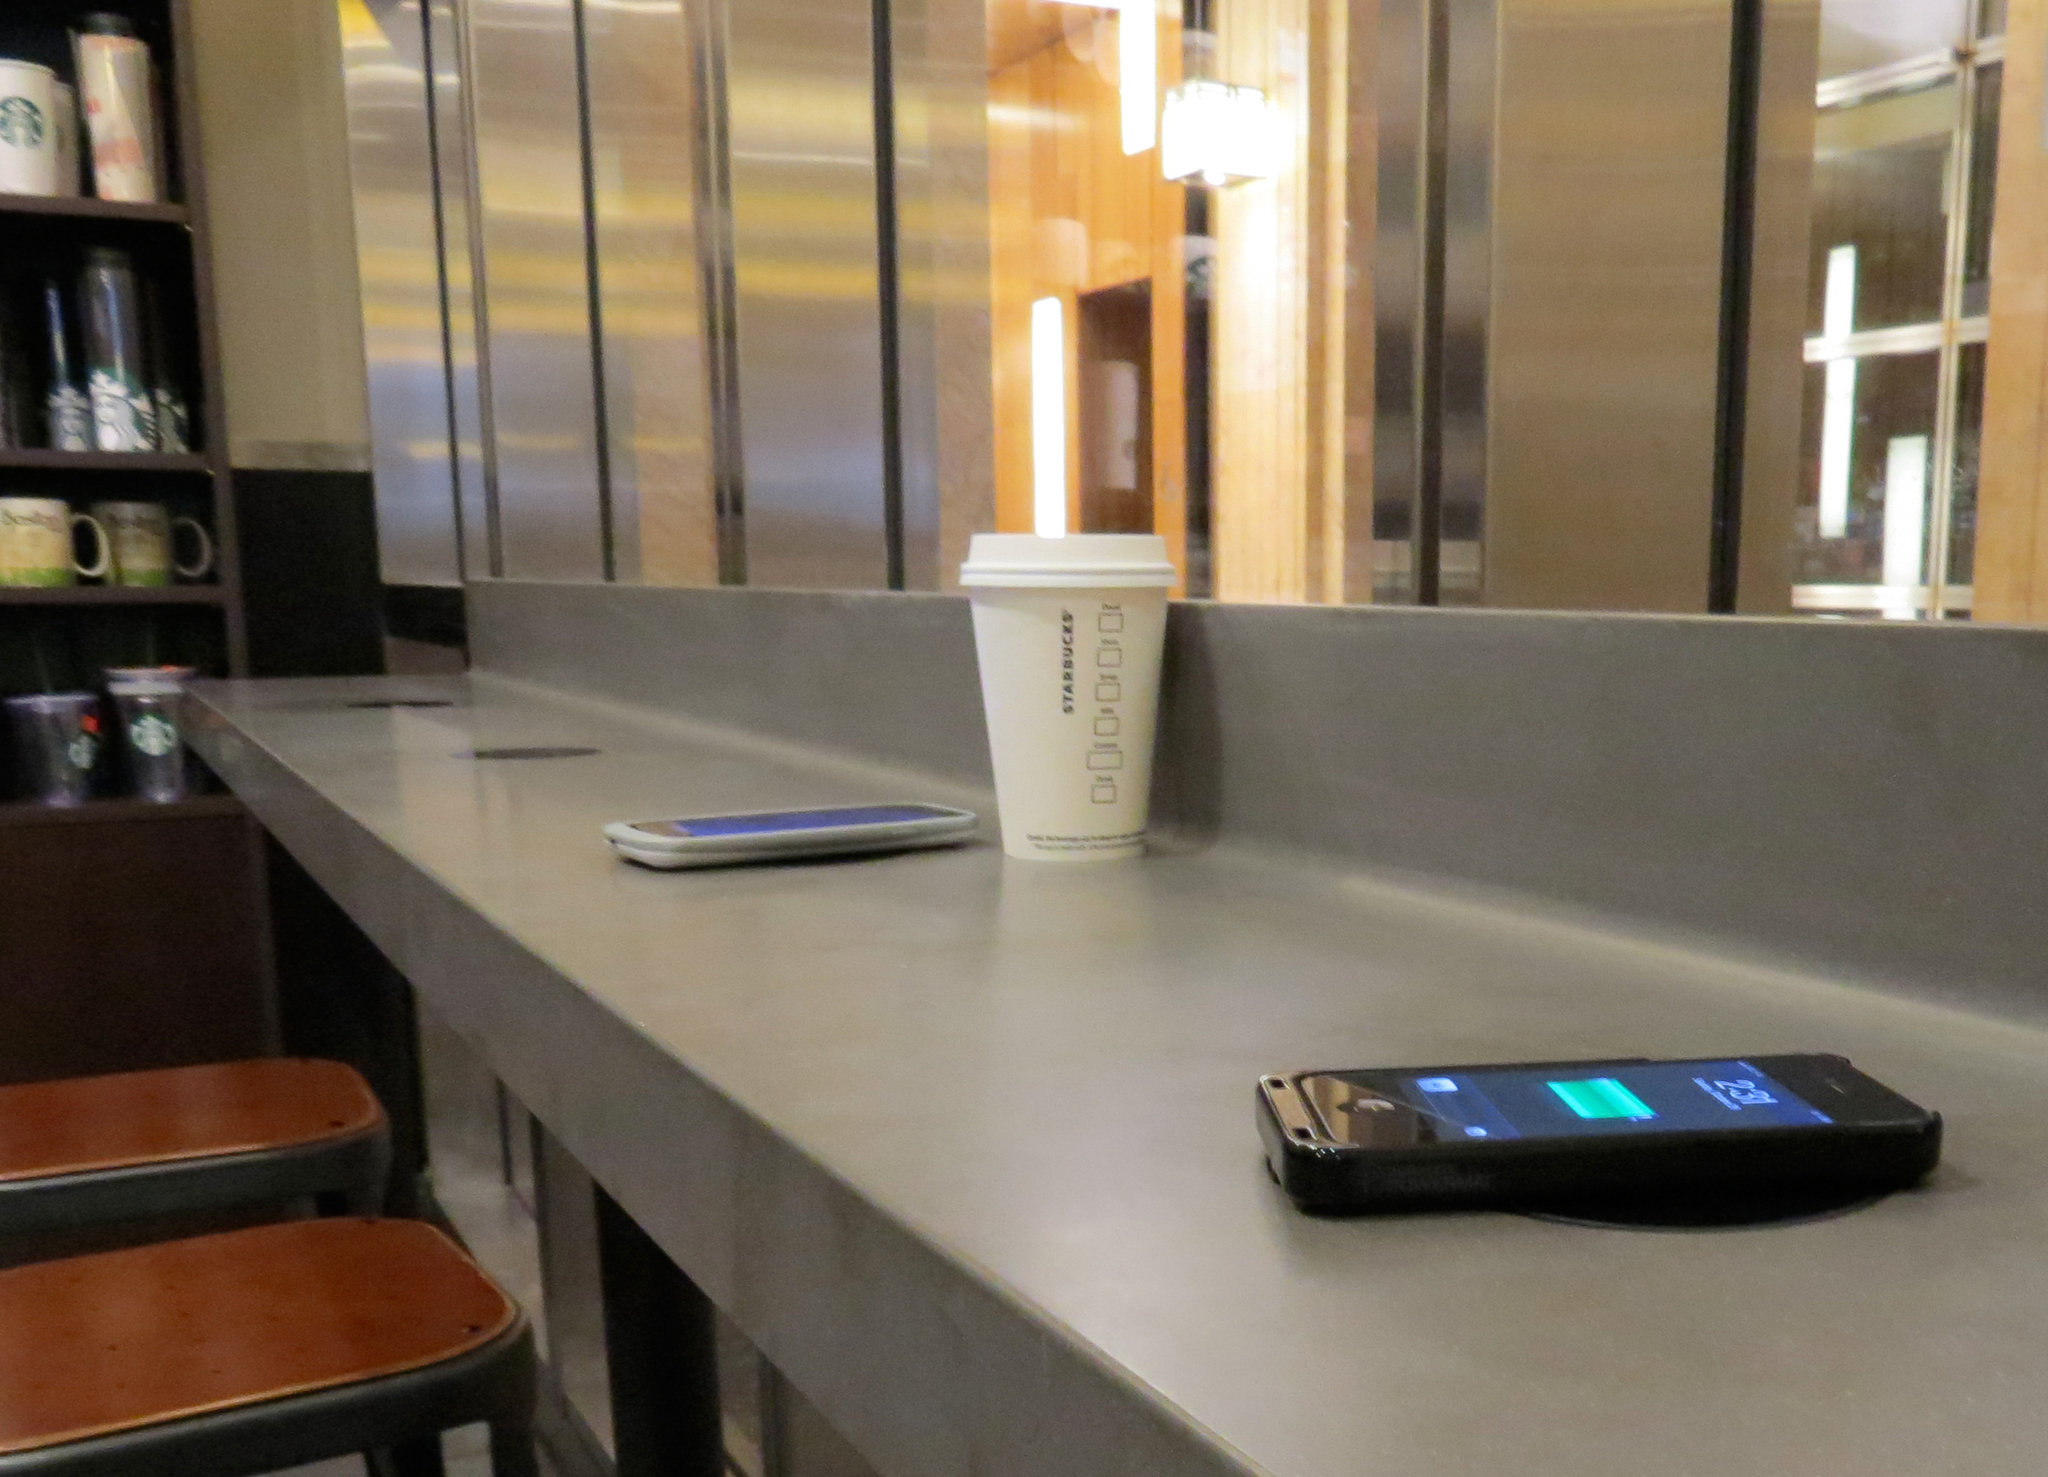 Starbucks plans to have wireless charging stations in all its company-owned stores in major United States markets by the end of 2015.